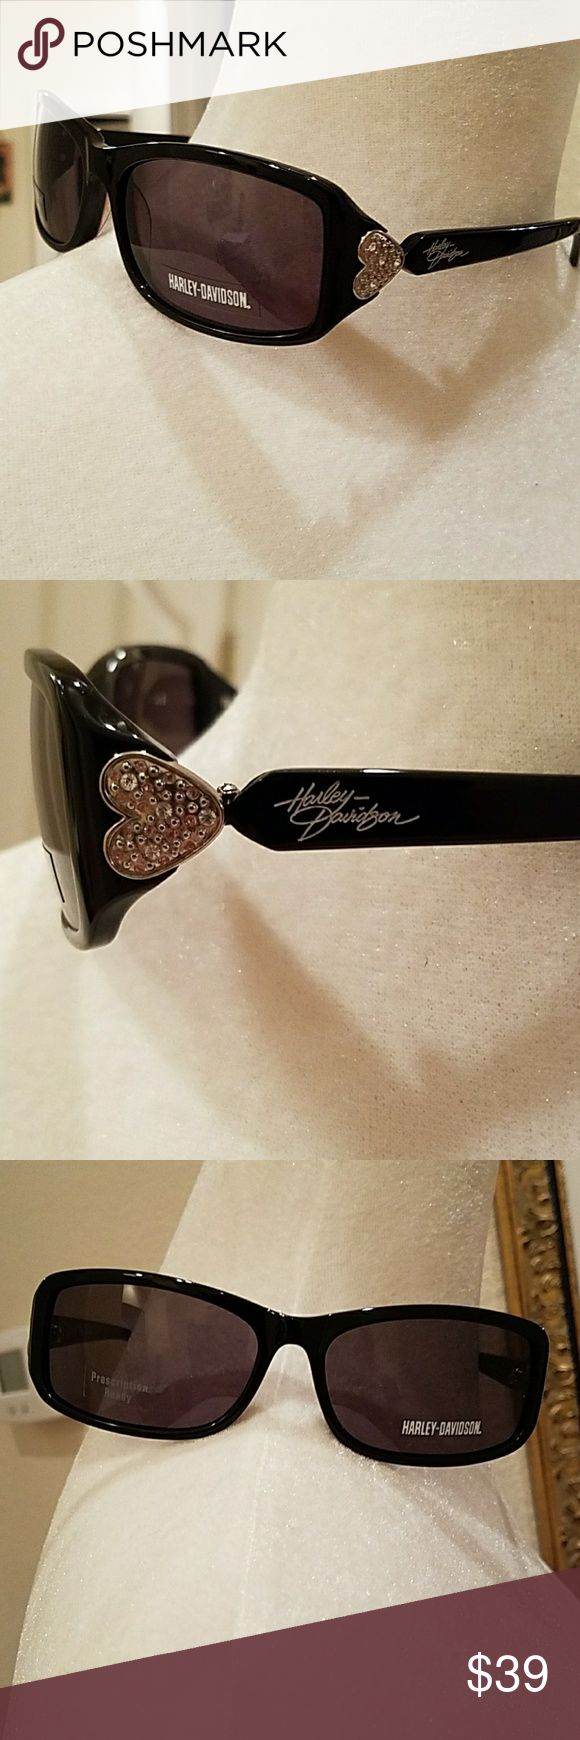 NEW HARLEY DAVIDSON SUNGLASSES BRAND NEW Authentic Harley Davidson Sunglasses.  Prescription Ready, if needed.  Black with Heart.  Comes with lens cleaner case shown.  From a non-smoking home. Harley-Davidson Accessories Sunglasses